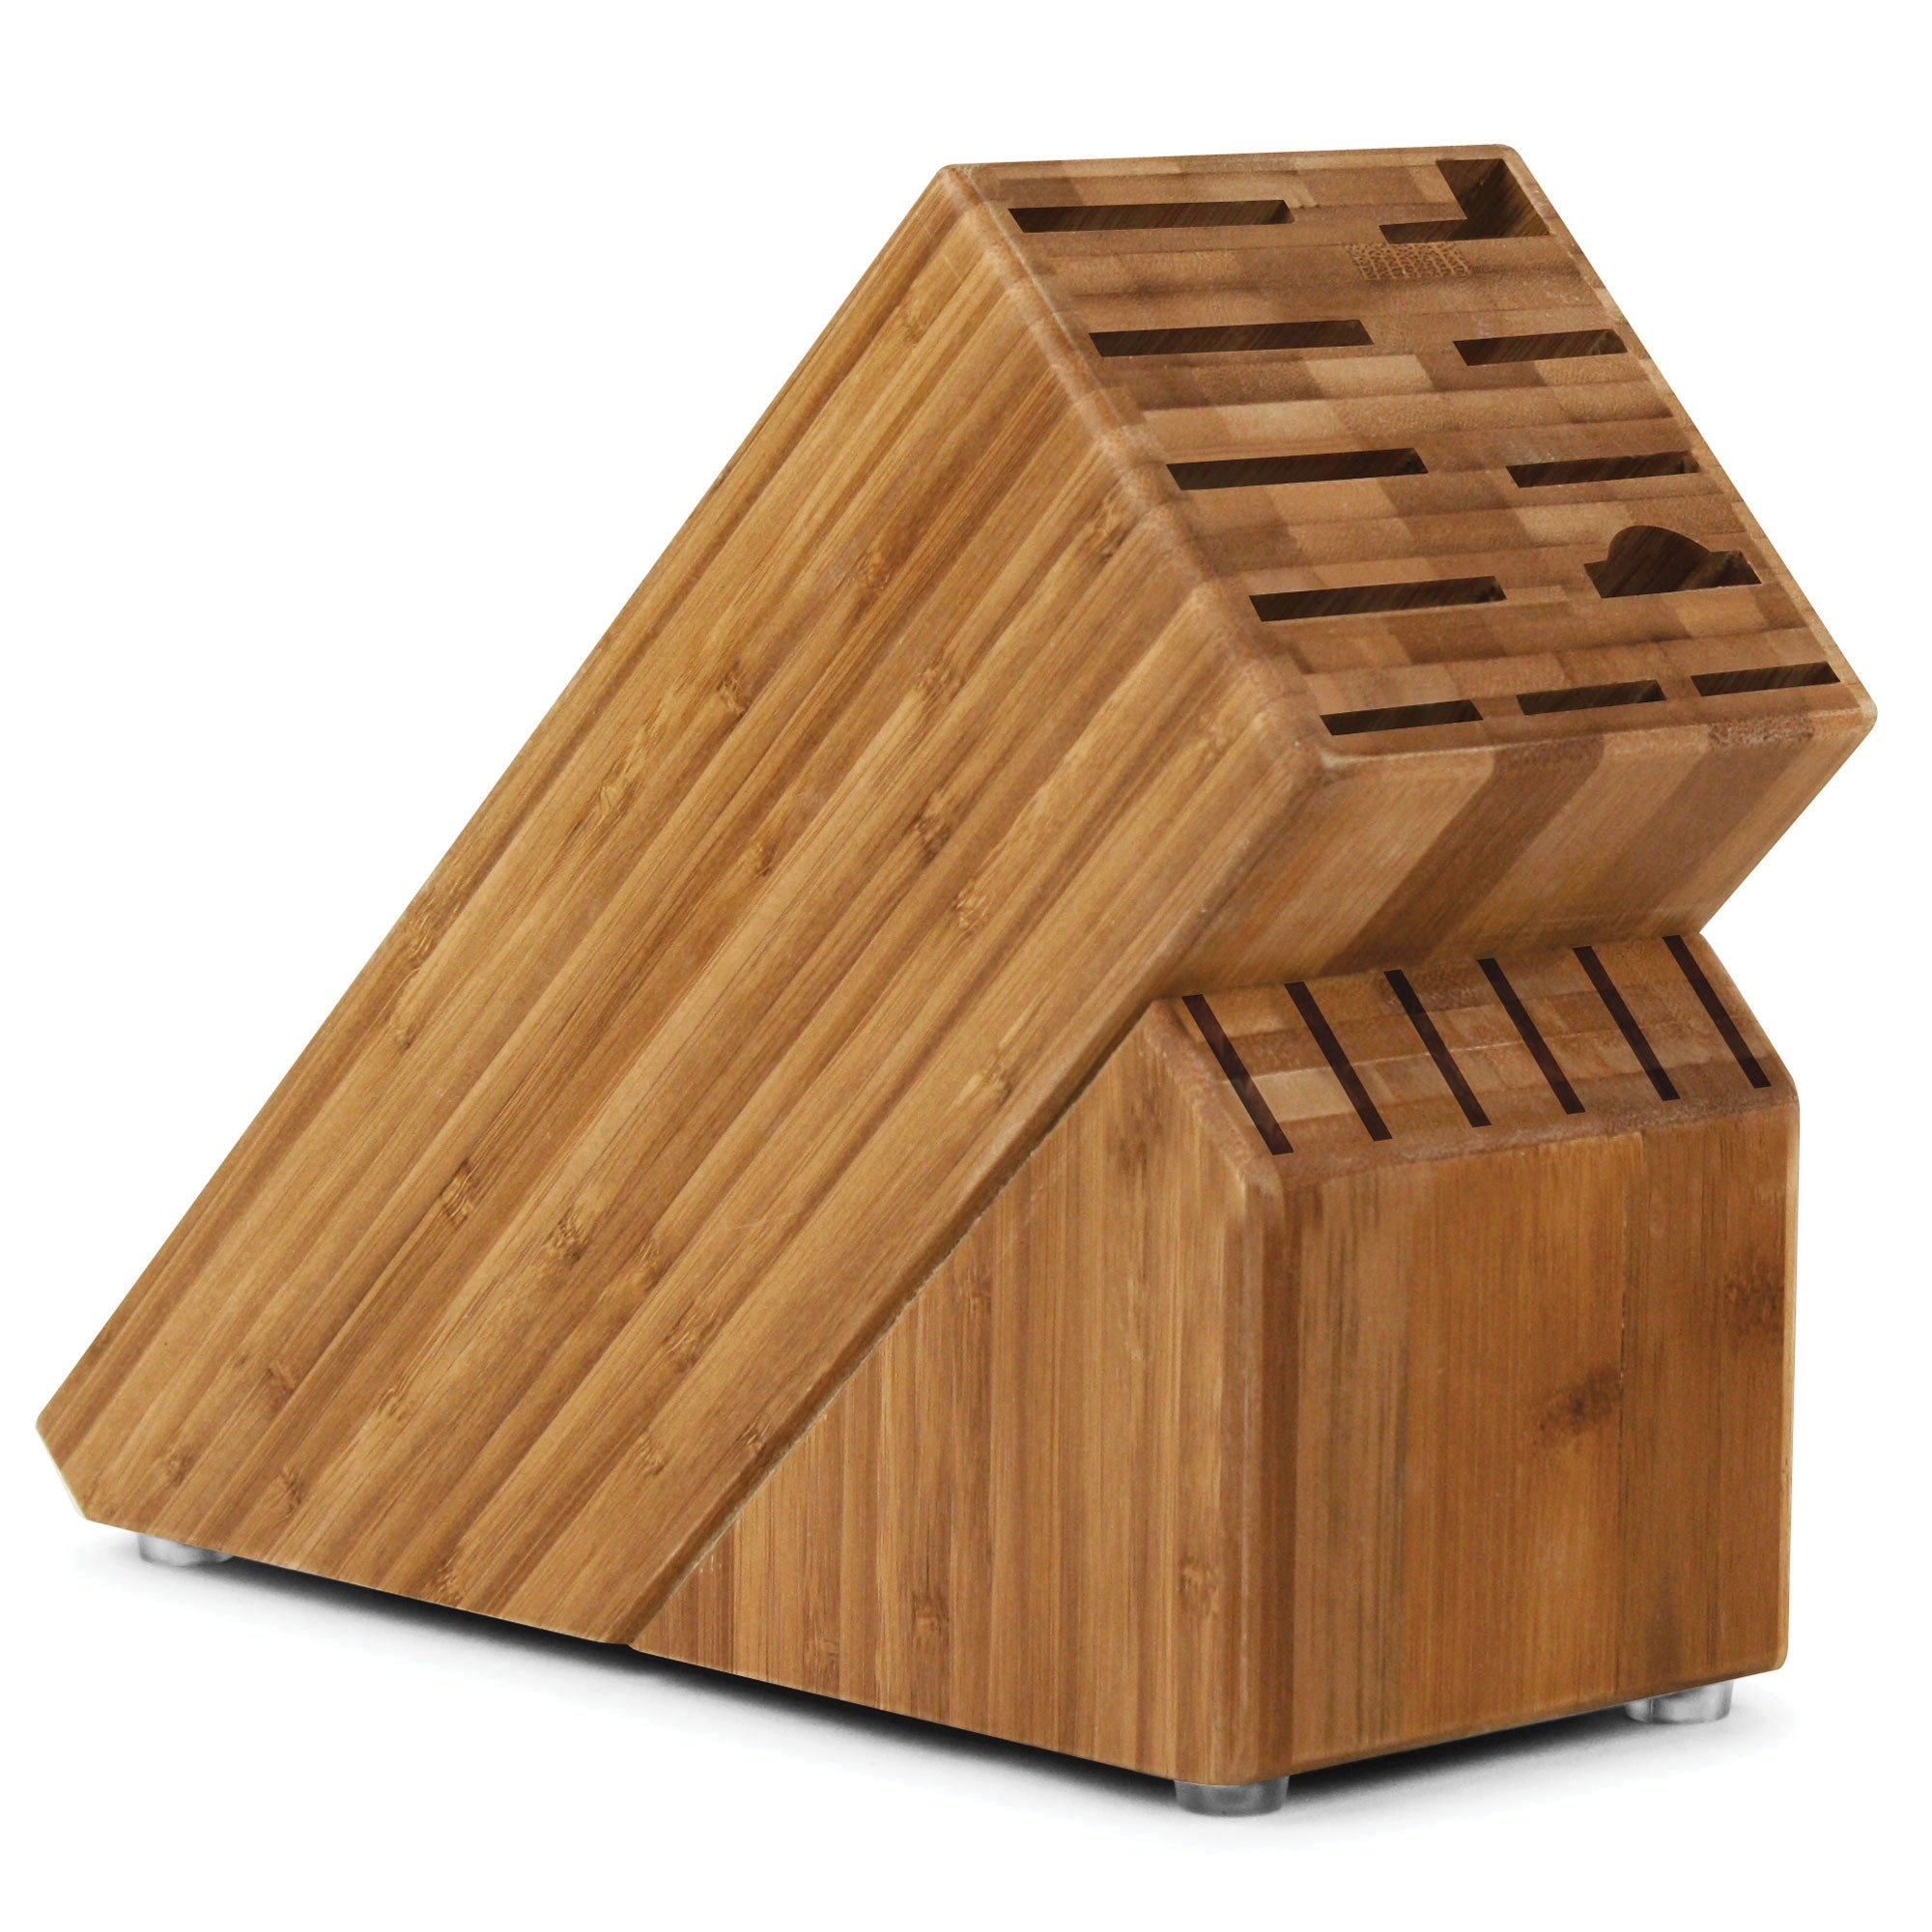 Lamson Signature 10-piece Bamboo Knife Block Set by Lamson (Image #3)